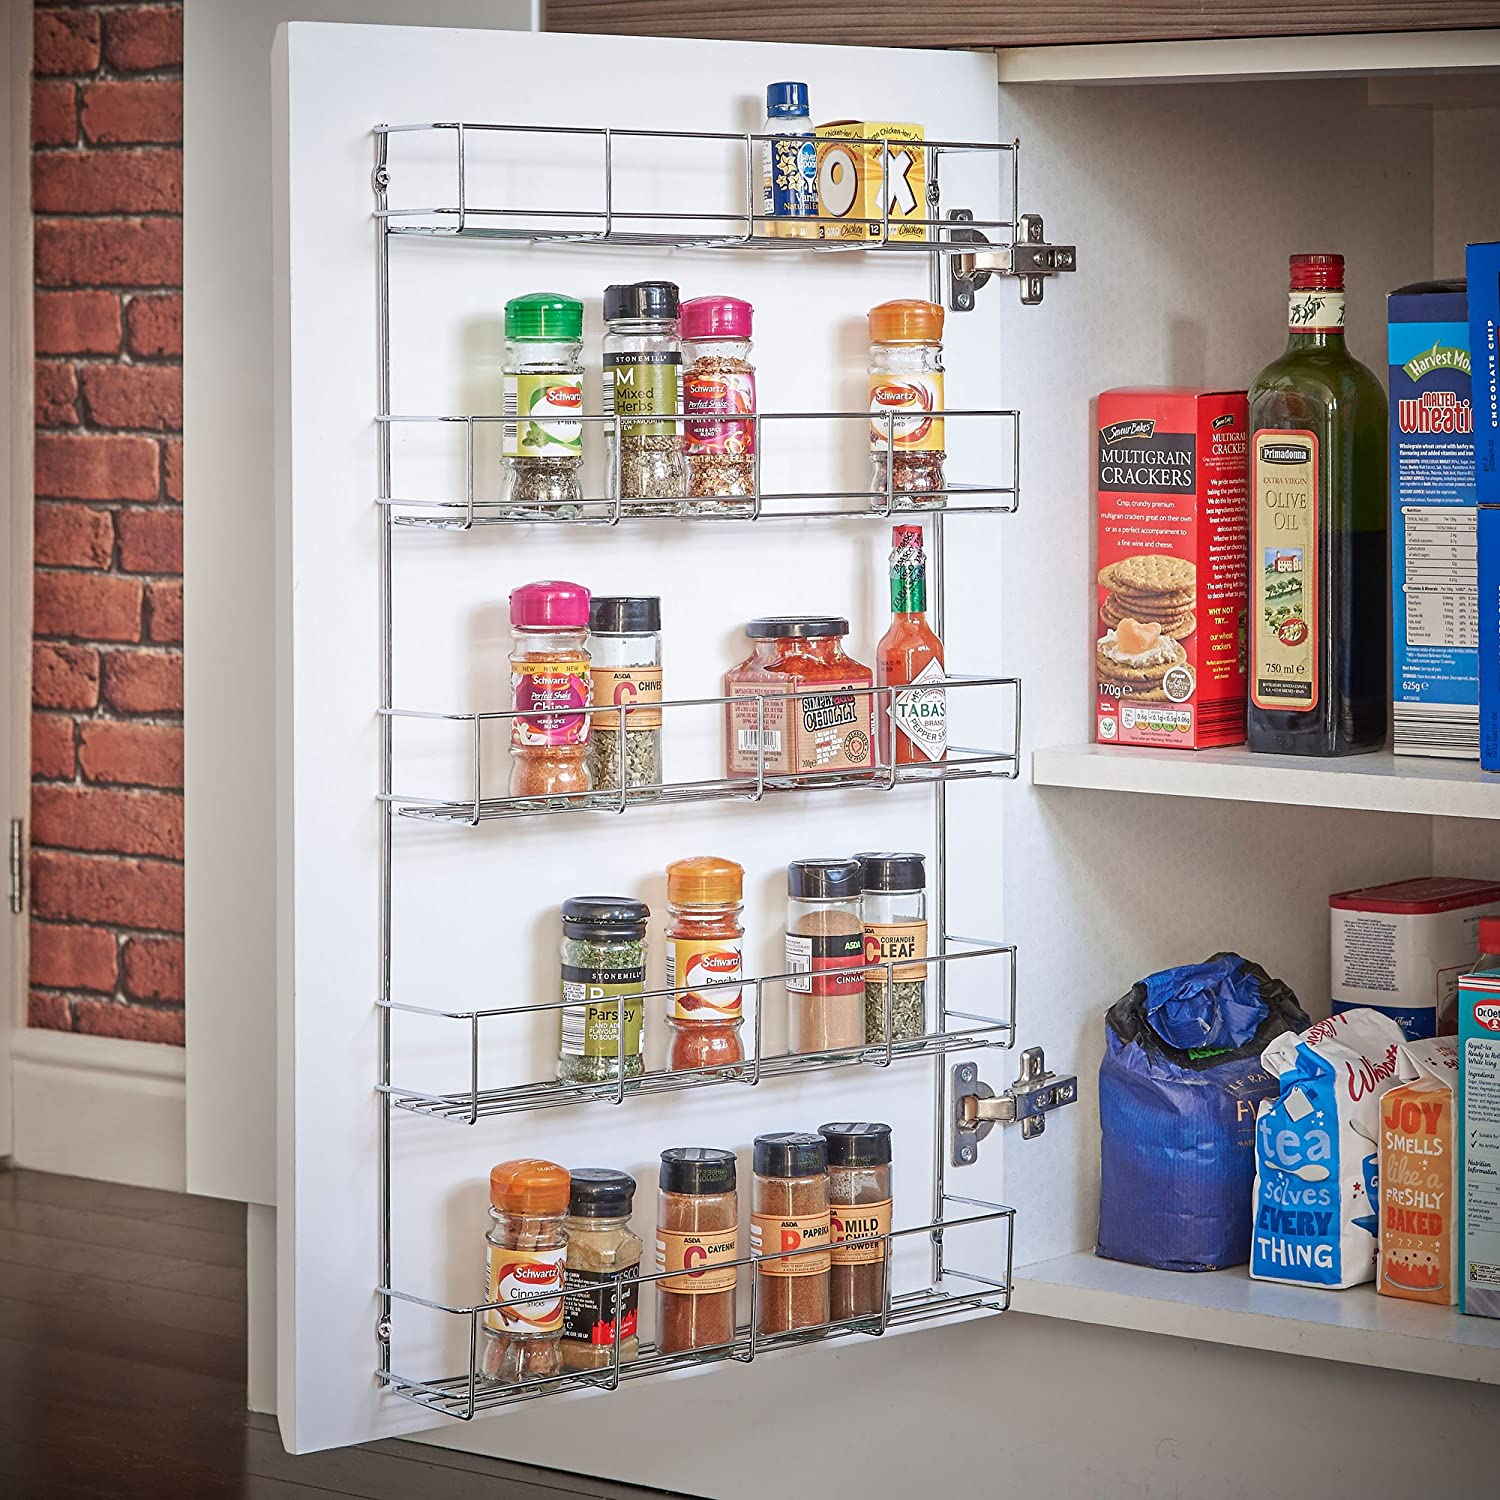 Amazon.com: VonShef 5 Tier Spice Rack Organizer Chrome Plated (Easy Fix)  For Herbs And Spices | Suitable For Wall Mount Or Inside Cupboard: Kitchen  U0026 Dining